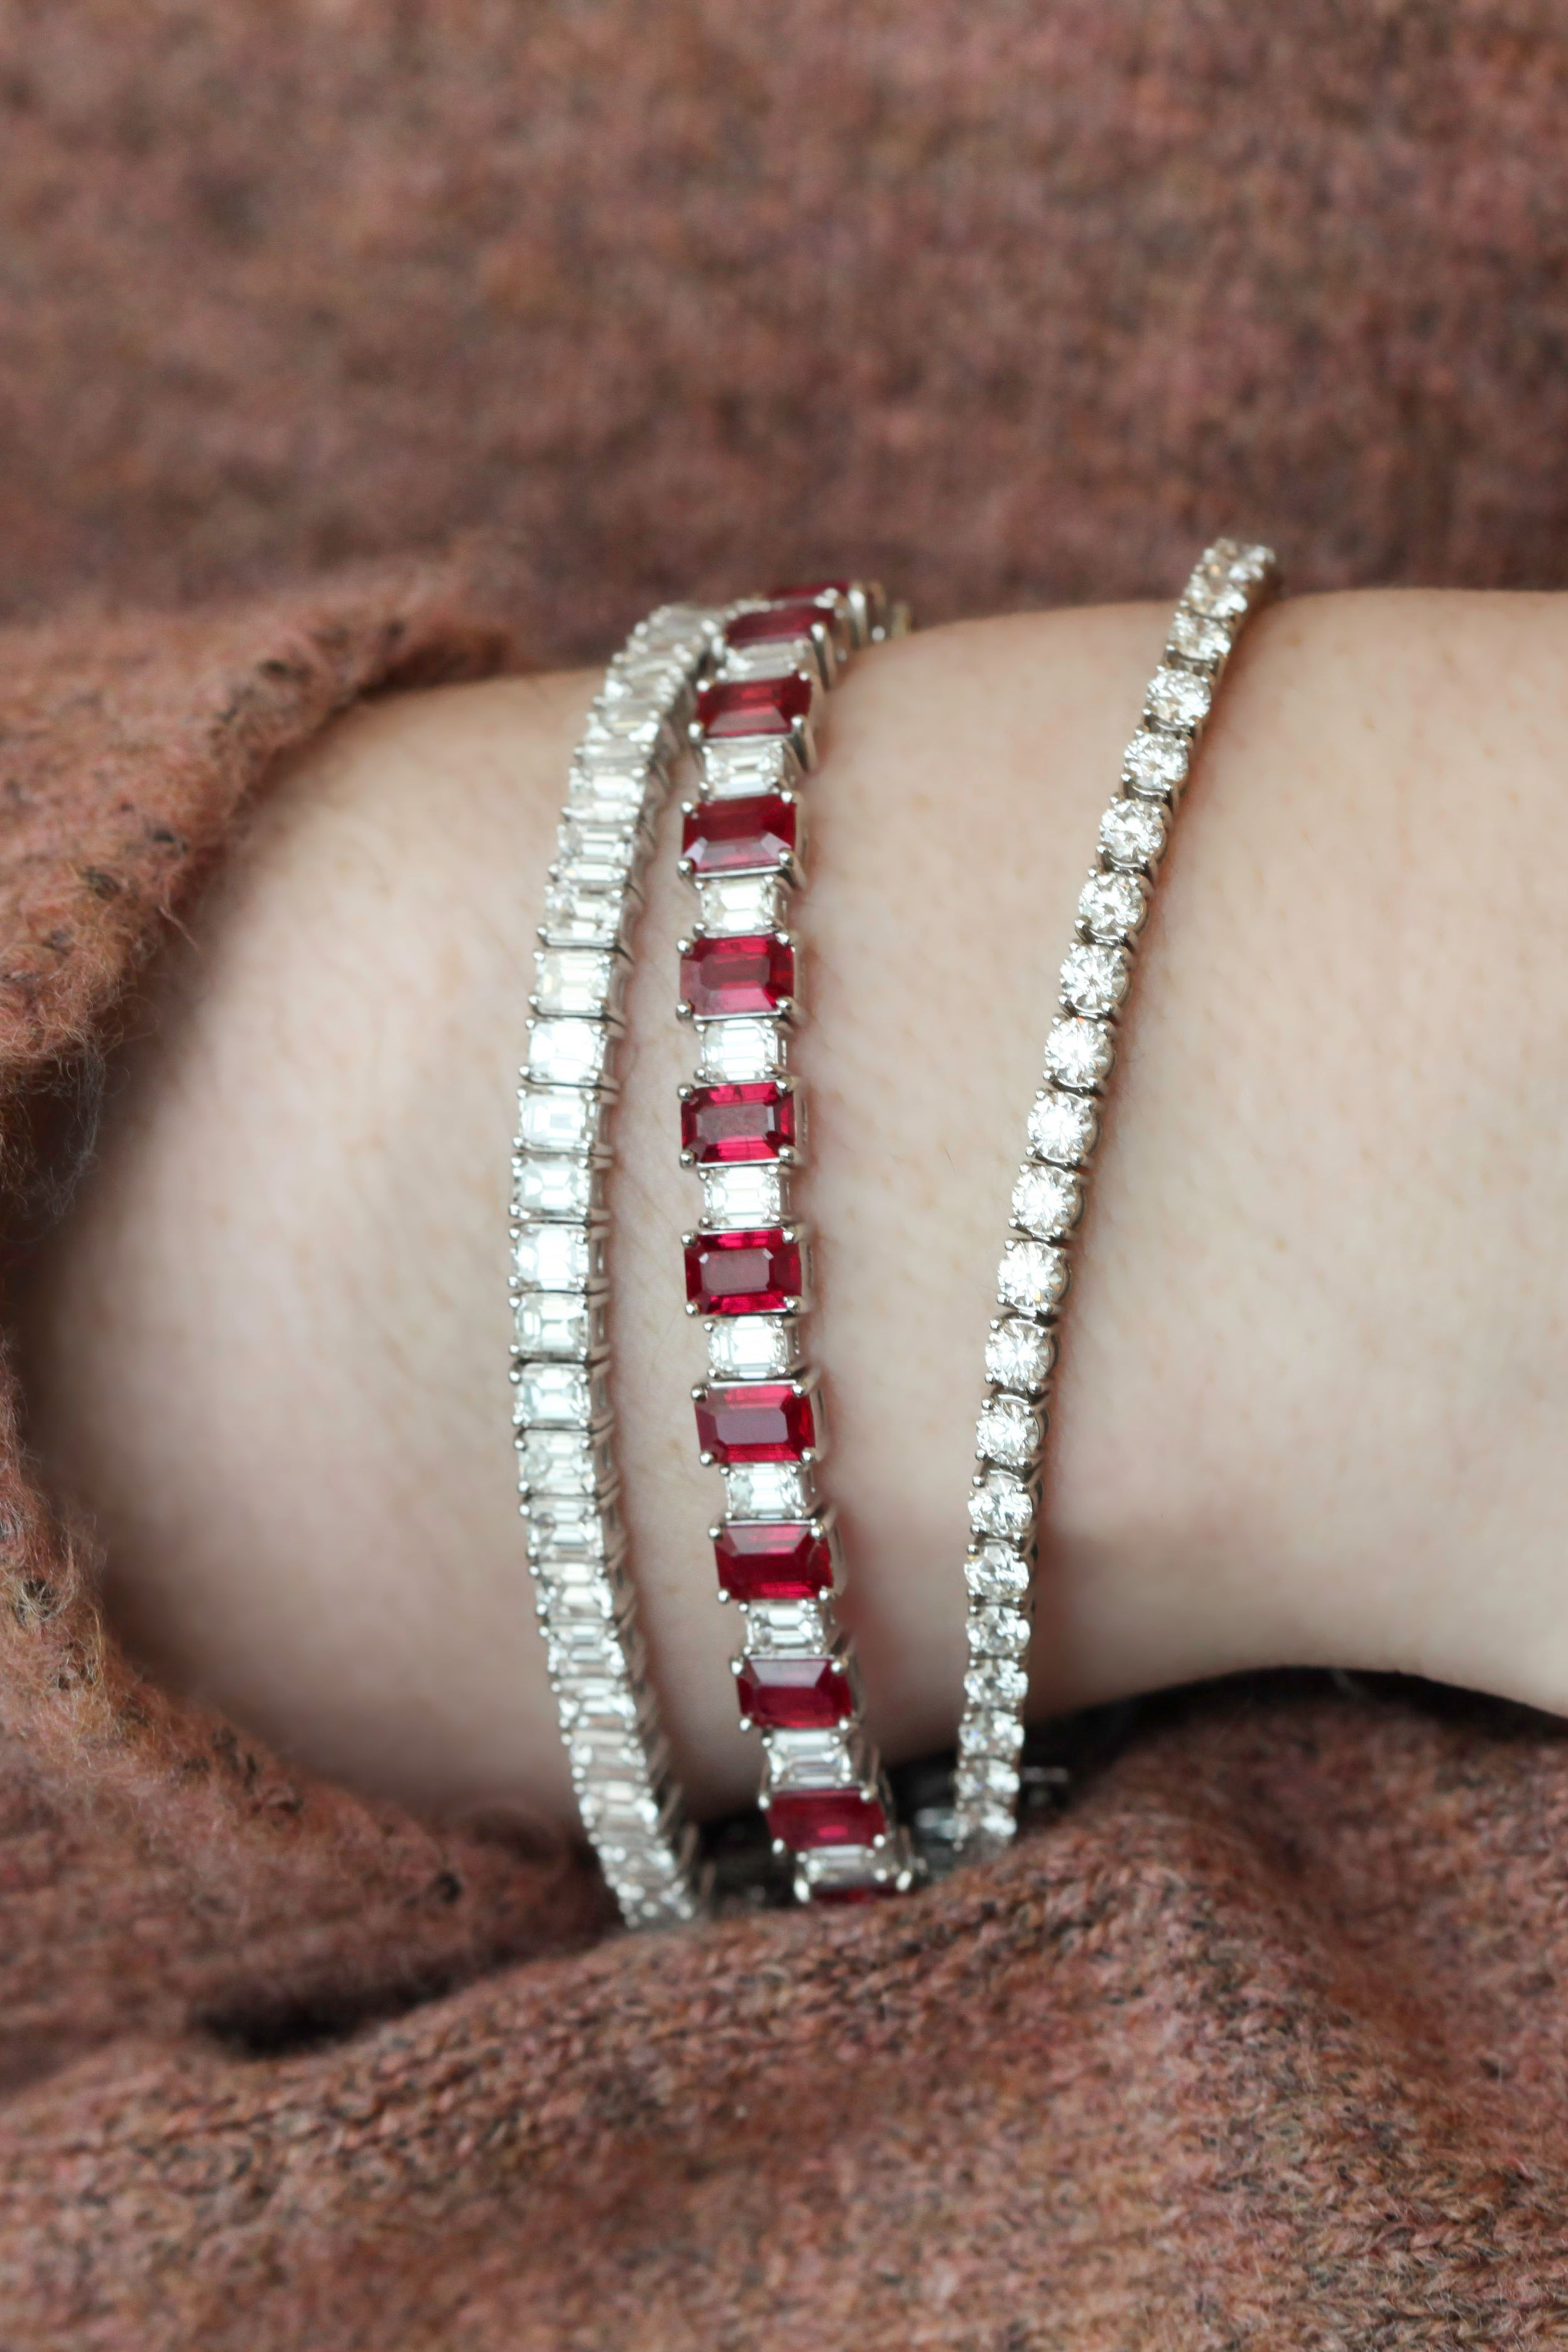 A Tennis Bracelet Stack Can Finish Off Any Outfit Perfectly Tennis Bracelet Diamond Diamond Tennis Bracelet Stack Diamond